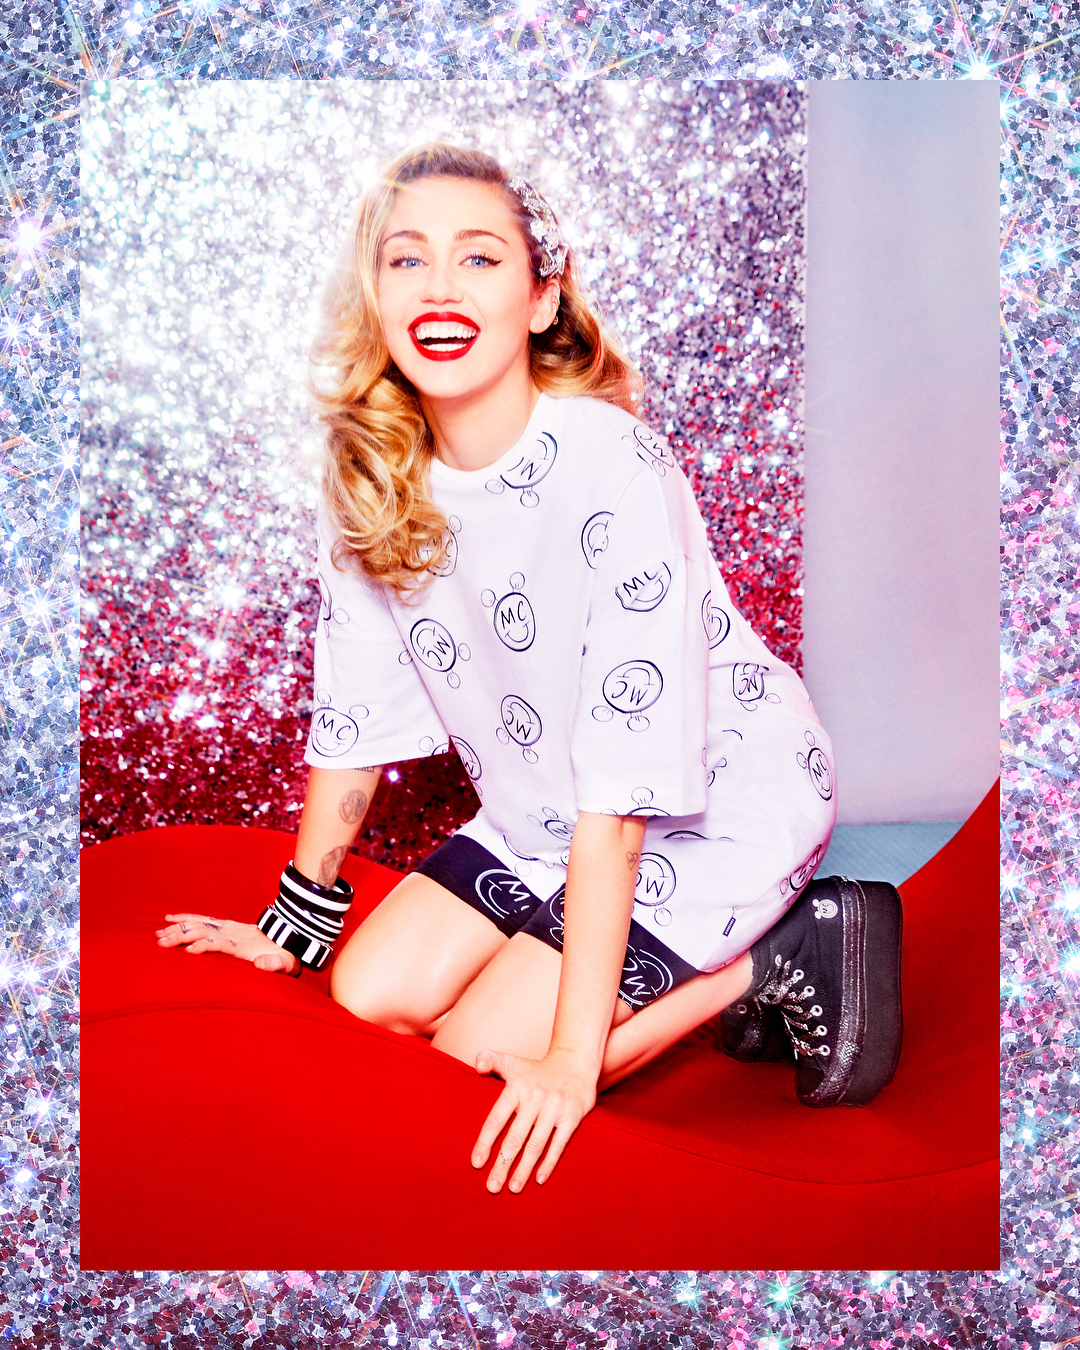 """Miley Cyrus has never been known for her sartorial restraint – and her latest project is no exception.<br /> <br /> The 'Malibu' singer unveiled her debut collection with sneaker giant Converse this week. And, as expected, the highly-anticipated 'Converse X Miley' range is a celebration of the former Disney star's eclectic style. (There isn't a sterile white sneaker in sight).<br /> <br /> Instead, sportswear aficionados will soon be filling their wardrobes with platform sneakers decorated with glitter, pastel leggings and cropped hoodies. The range aims to provide a fun and glitzy aesthetic that can take you from the gym to the karaoke bar.<br /> <br /> Owing to Cyrus's activism and passion for LGBT rights and diversity, the collection reflects a feeling of self-empowerment and is for both men and women.<br /> <br /> """"No age, no gender, no sex — I wanted everyone to feel included,"""" 25-year-old Cyrus said in an official statement.<br /> <br /> """"Converse has no boundaries. It's outspoken. I've always identified with Converse because the brand appeals to and represents so many different cultures and walks of life. And they're accessible.""""<br /> <br /> Shot by fashion favourite Ellen von Unwerth, the campaign is as lively as the singer's designs.<br /> <br /> """"I definitely had my fans in mind and in my heart when I was creating,"""" Cyrus continued in her statement.<br /> <br /> """"I put what they love about me and what I love about them into the design.""""<br /> <br /> Click through to shop some of HoneyStyle's favourite Converse x Miley pieces.<br /> <br />"""